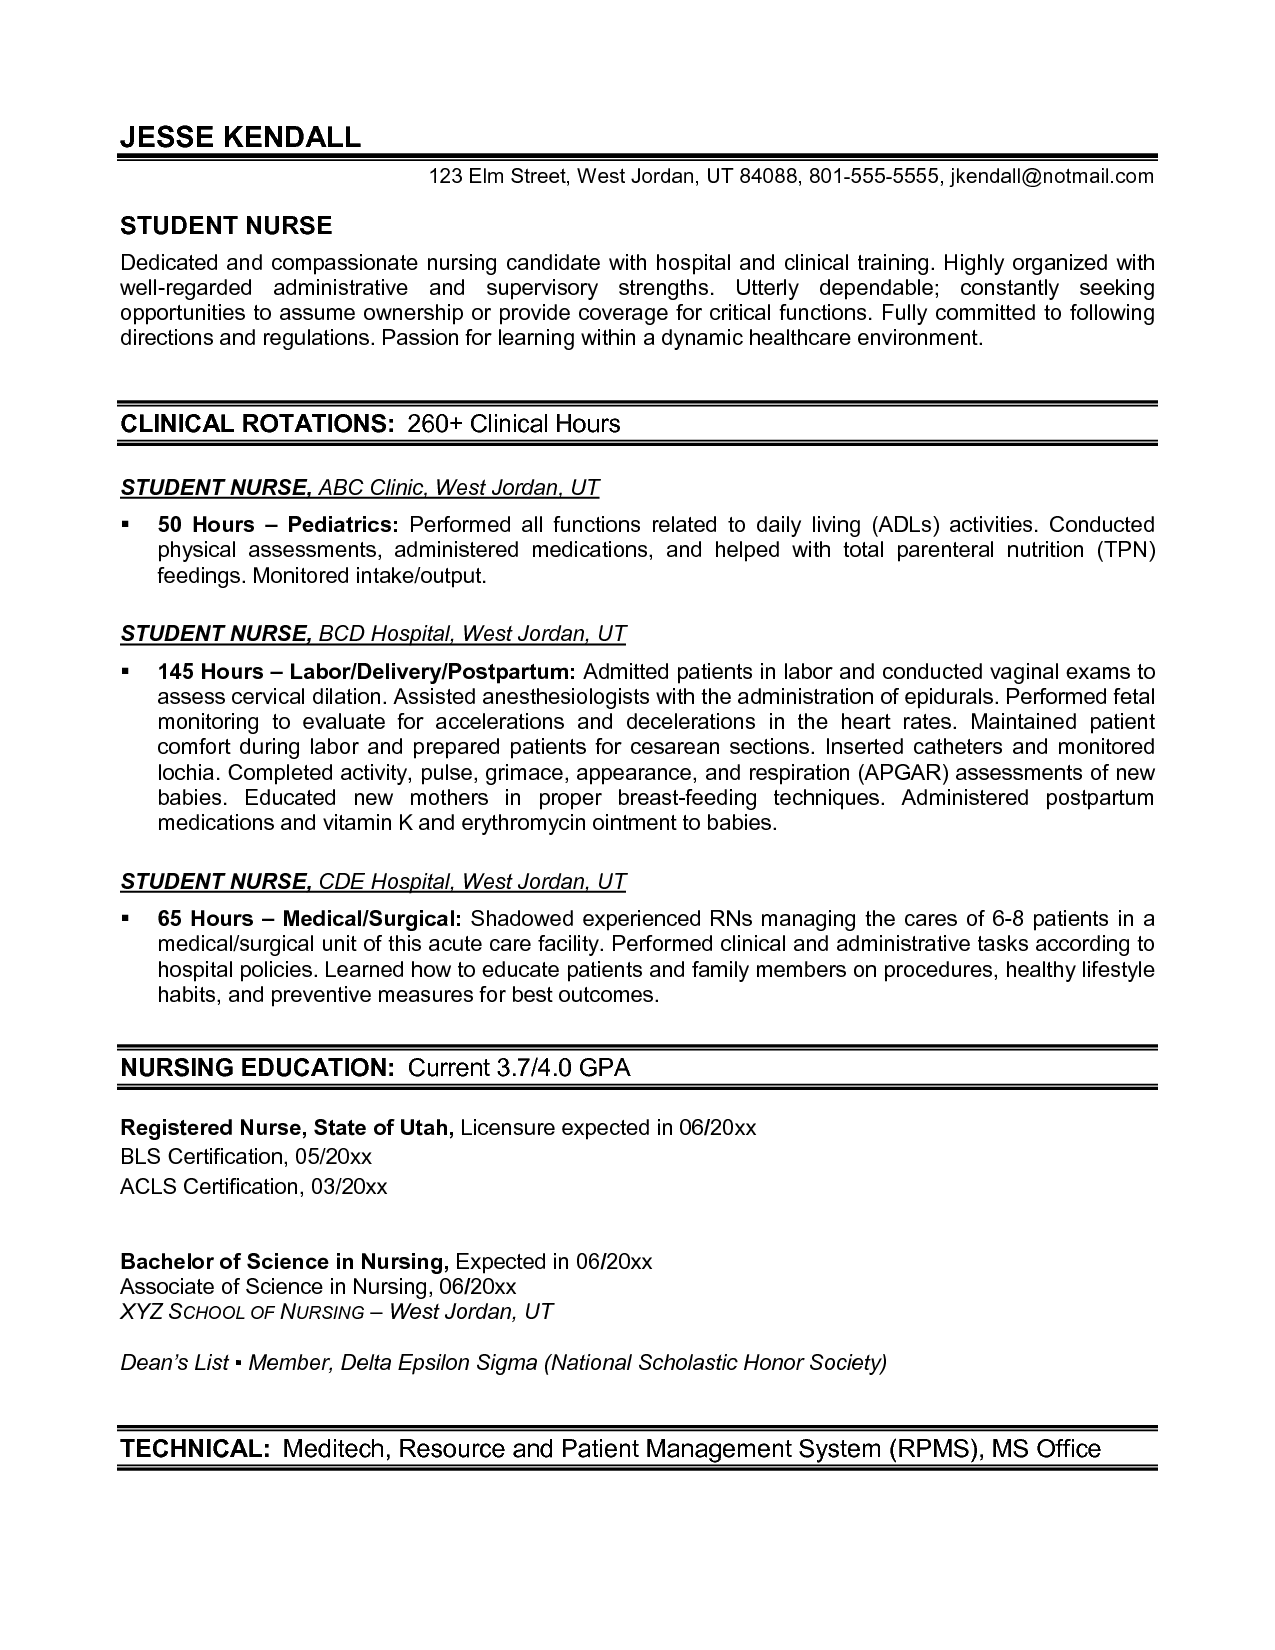 Current Resume Templates Resume Template Nursing  Nursing  Pinterest  Nursing Resume